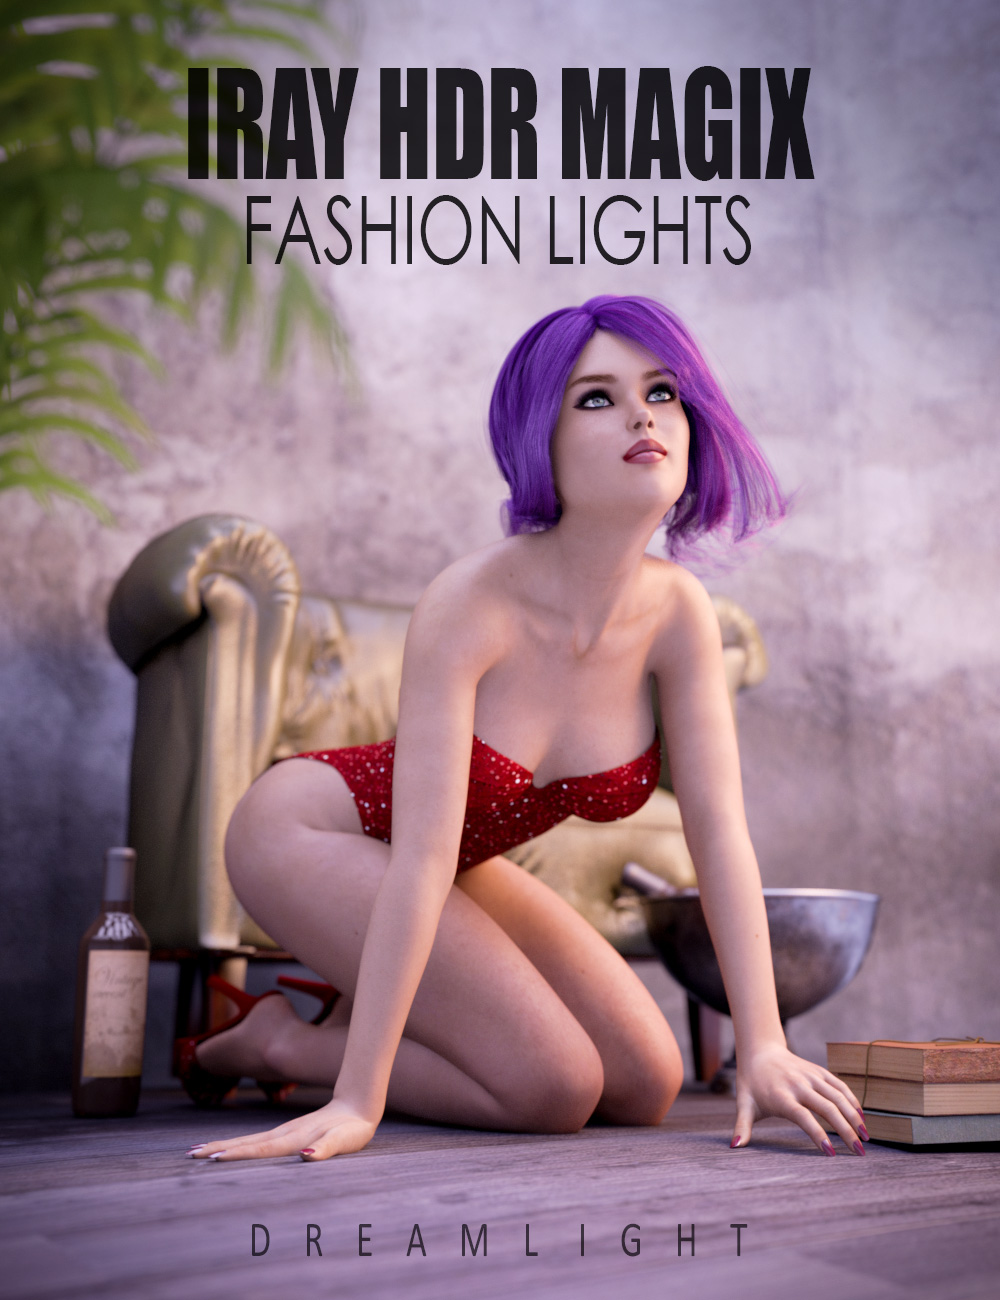 Iray HDR Magix Fashion Lights by: Dreamlight, 3D Models by Daz 3D